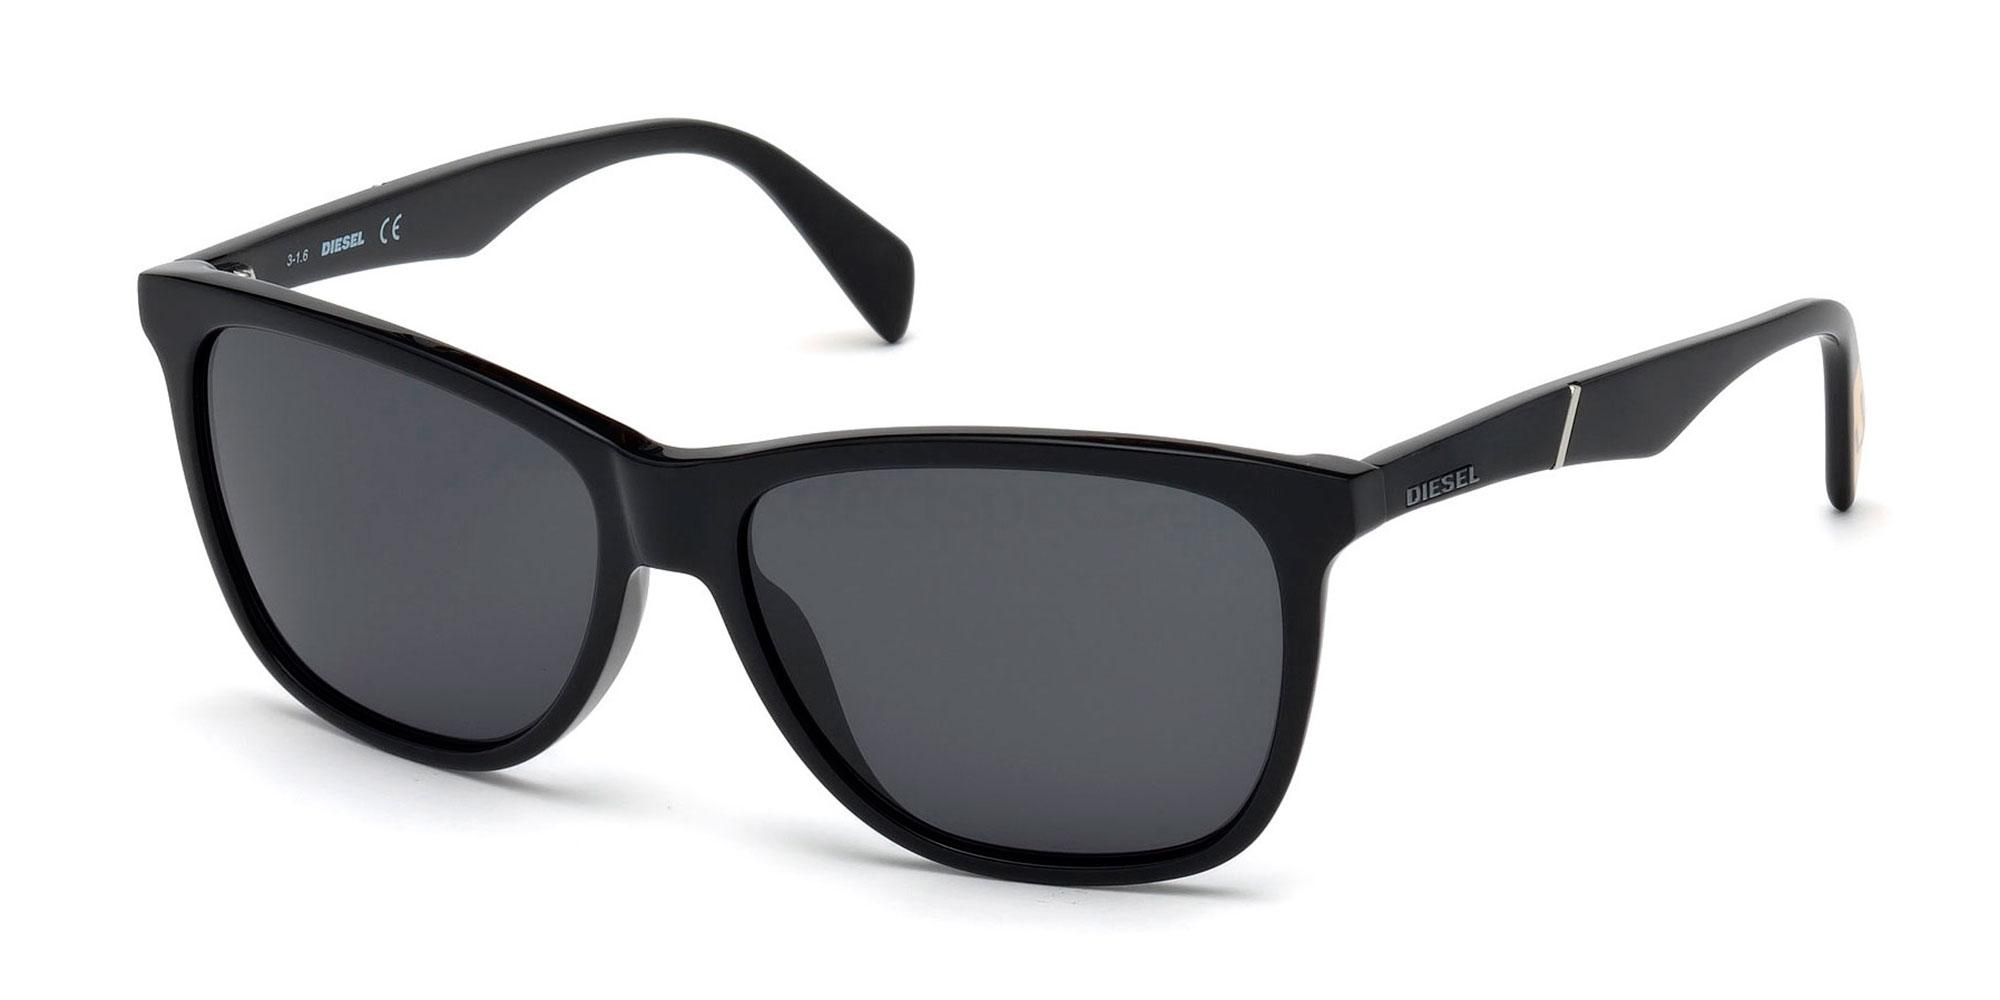 01A DL0222 Sunglasses, Diesel